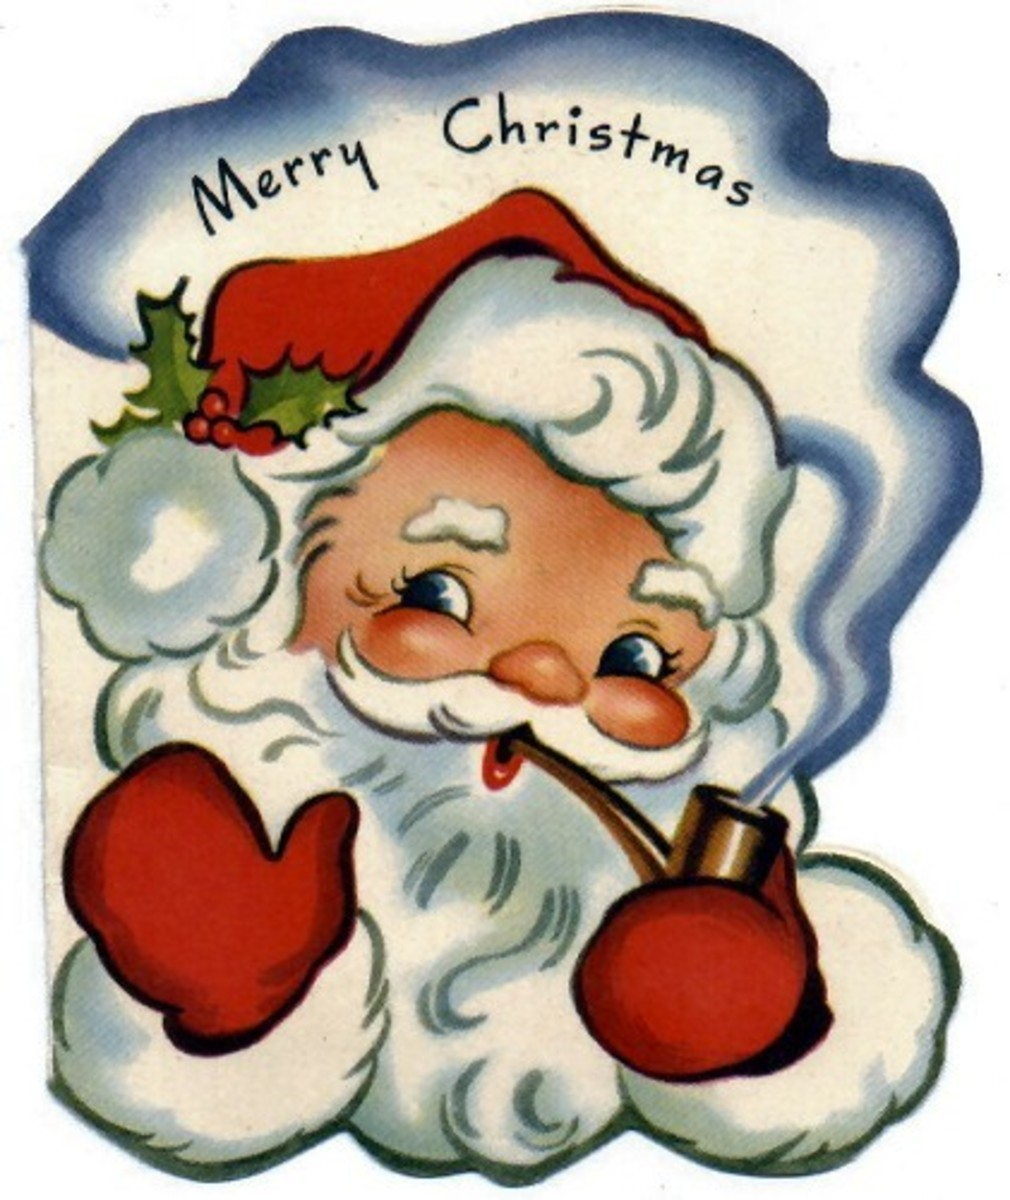 Vintage Santa graphics: a retro Santa and his pipe